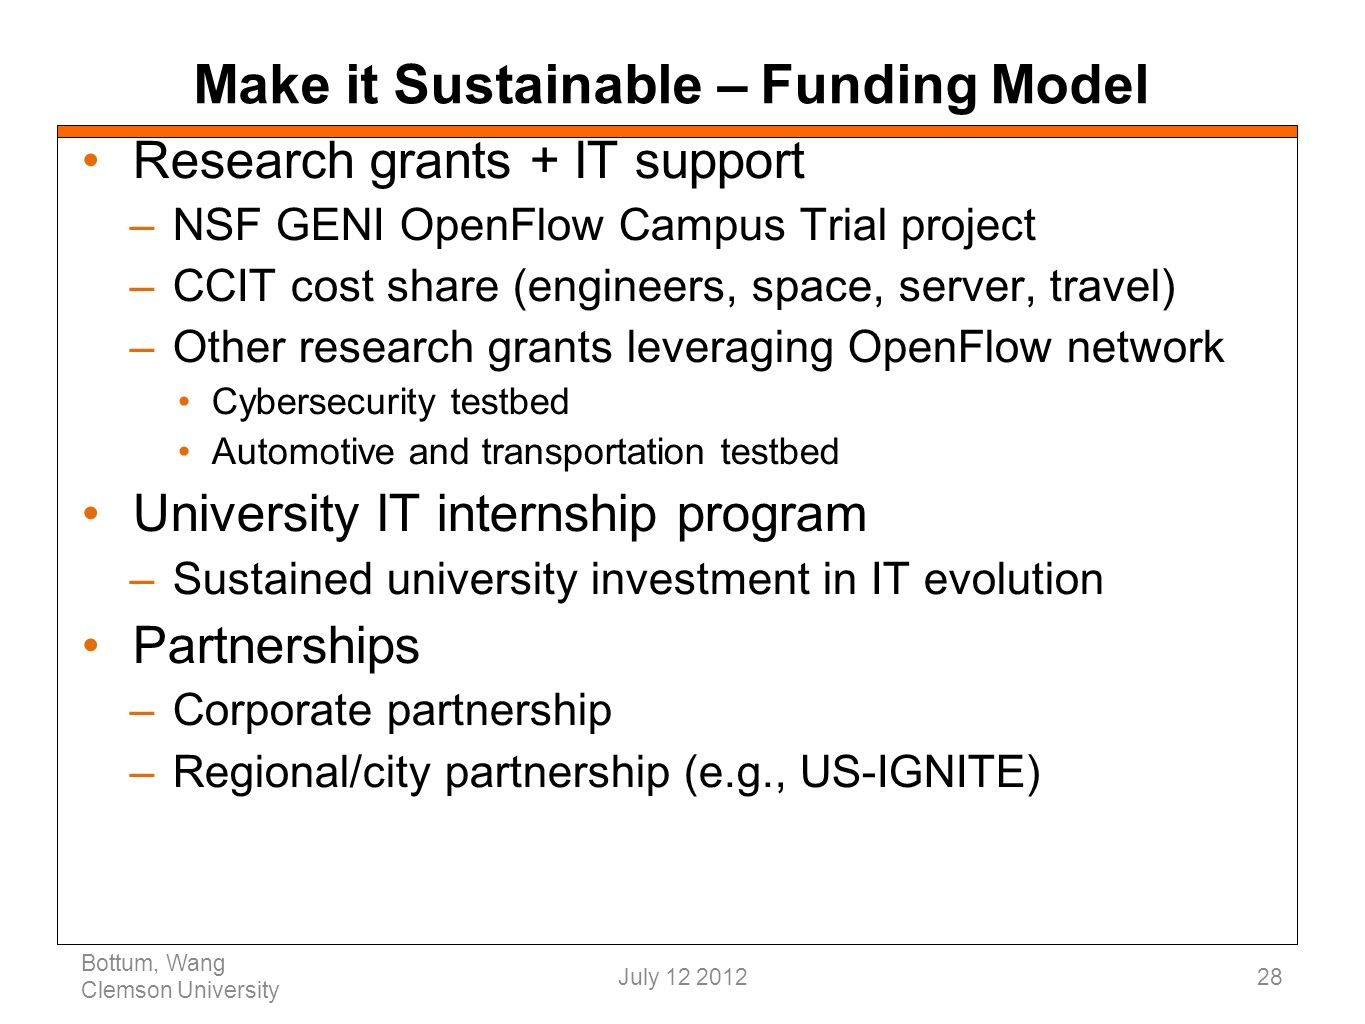 Make it Sustainable – Funding Model Research grants + IT support –NSF GENI OpenFlow Campus Trial project –CCIT cost share (engineers, space, server, travel) –Other research grants leveraging OpenFlow network Cybersecurity testbed Automotive and transportation testbed University IT internship program –Sustained university investment in IT evolution Partnerships –Corporate partnership –Regional/city partnership (e.g., US-IGNITE) Bottum, Wang Clemson University 28July 12 2012